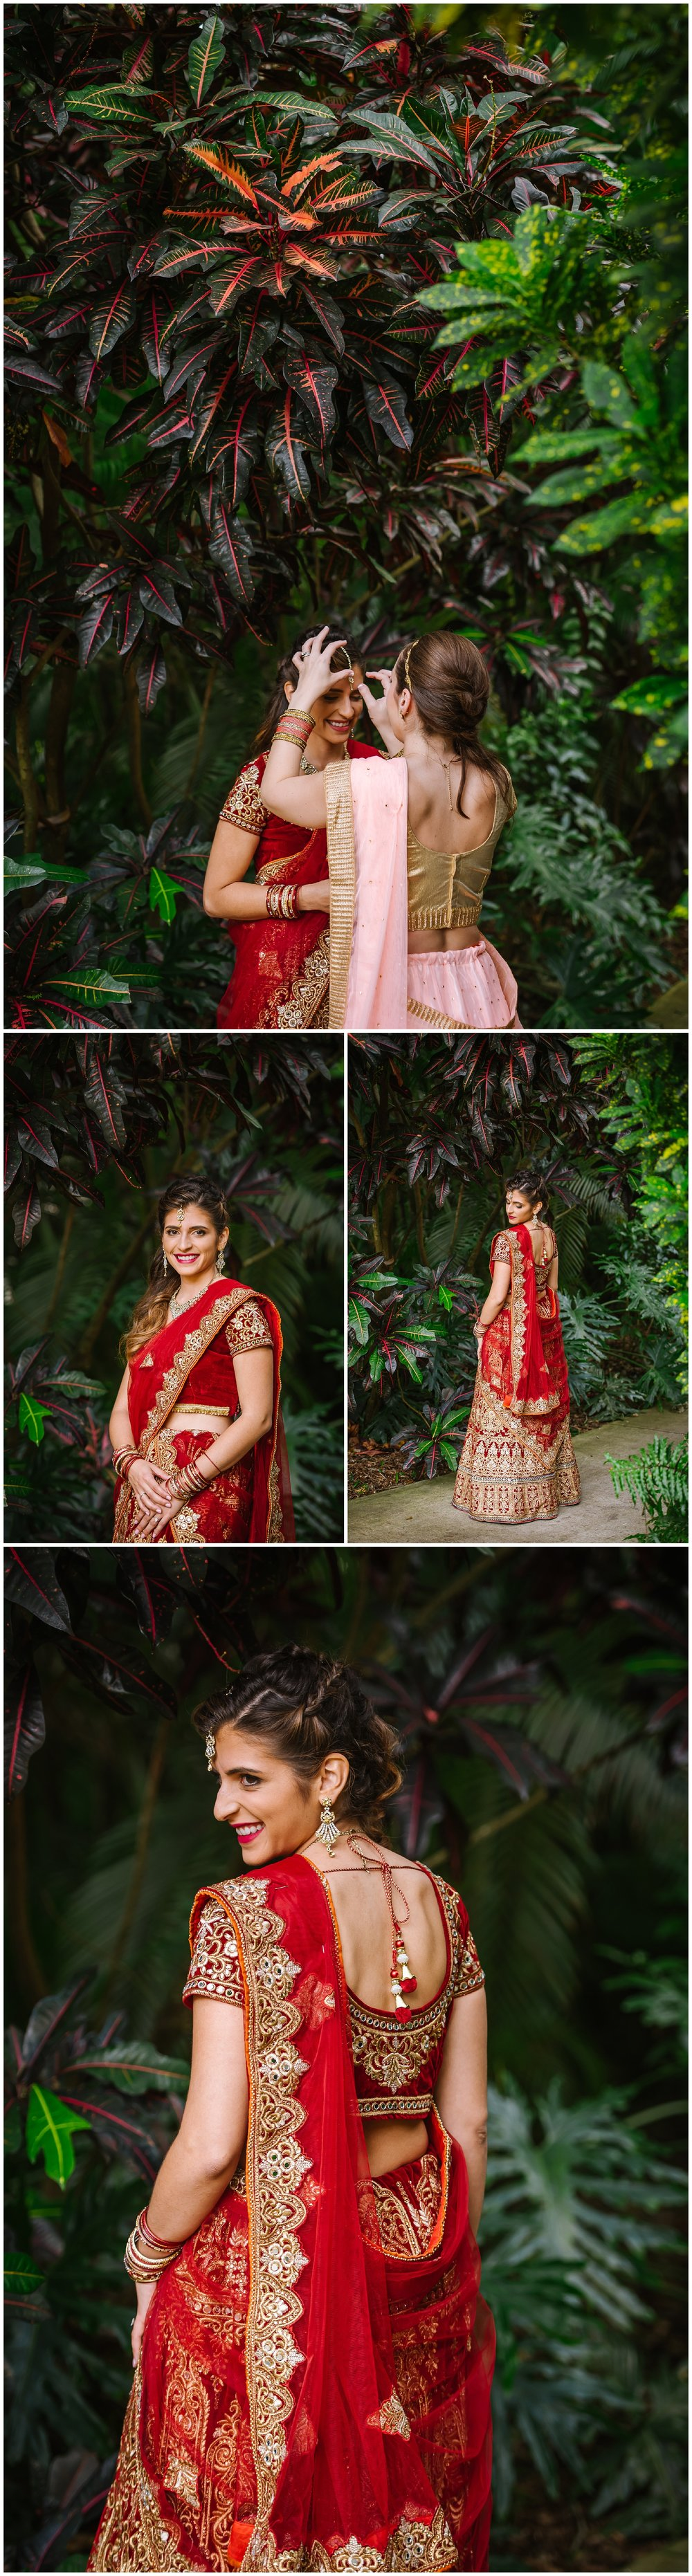 St-pete-indian-wedding-photographer-barat-sunken-gardens_0077.jpg